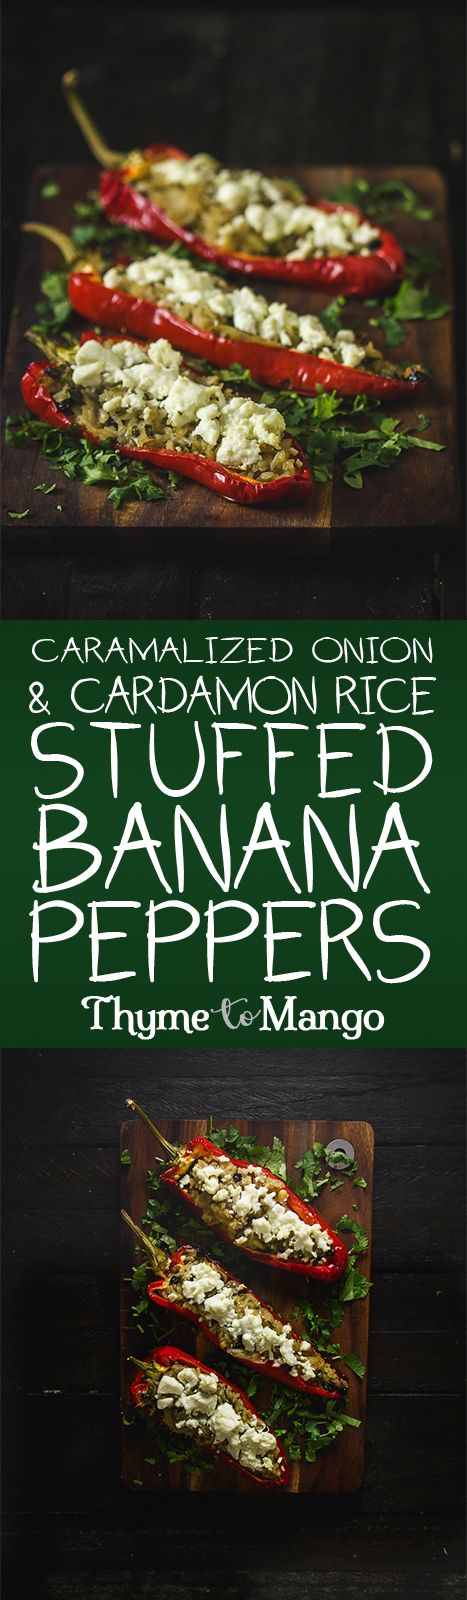 Get ready to stuff your face with the best side dish you have ever tasted with these caramelised onion and cardamon rice stuffed banana peppers